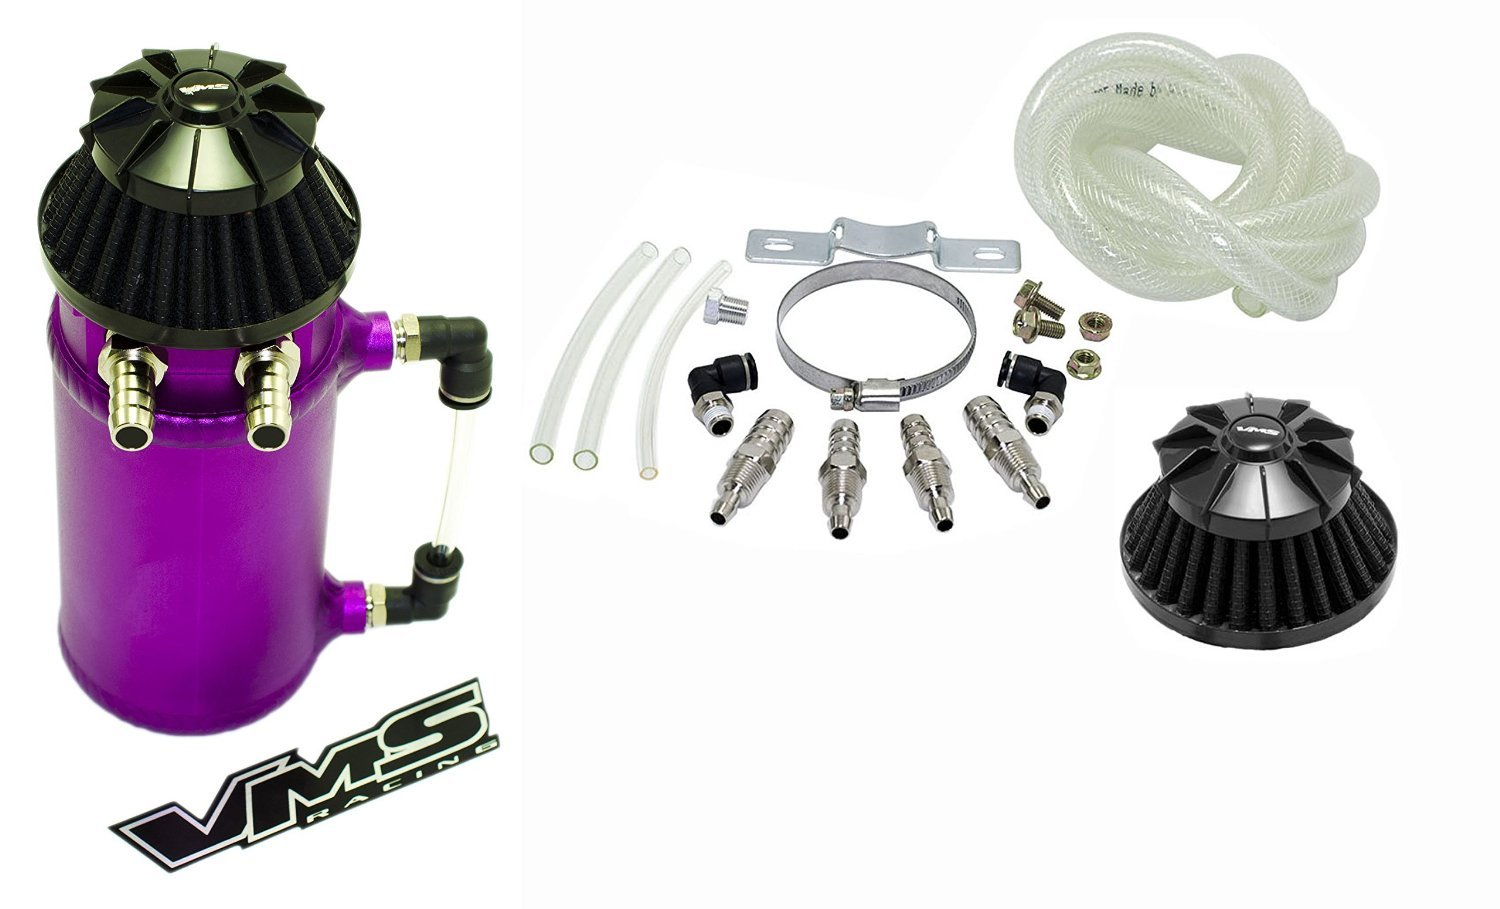 VMS Racing Universal Matte PURPLE Aluminum OIL Reservoir CATCH CAN Canister Tank with Breather (Complete Kit) 100-VMSCOCCTPR2